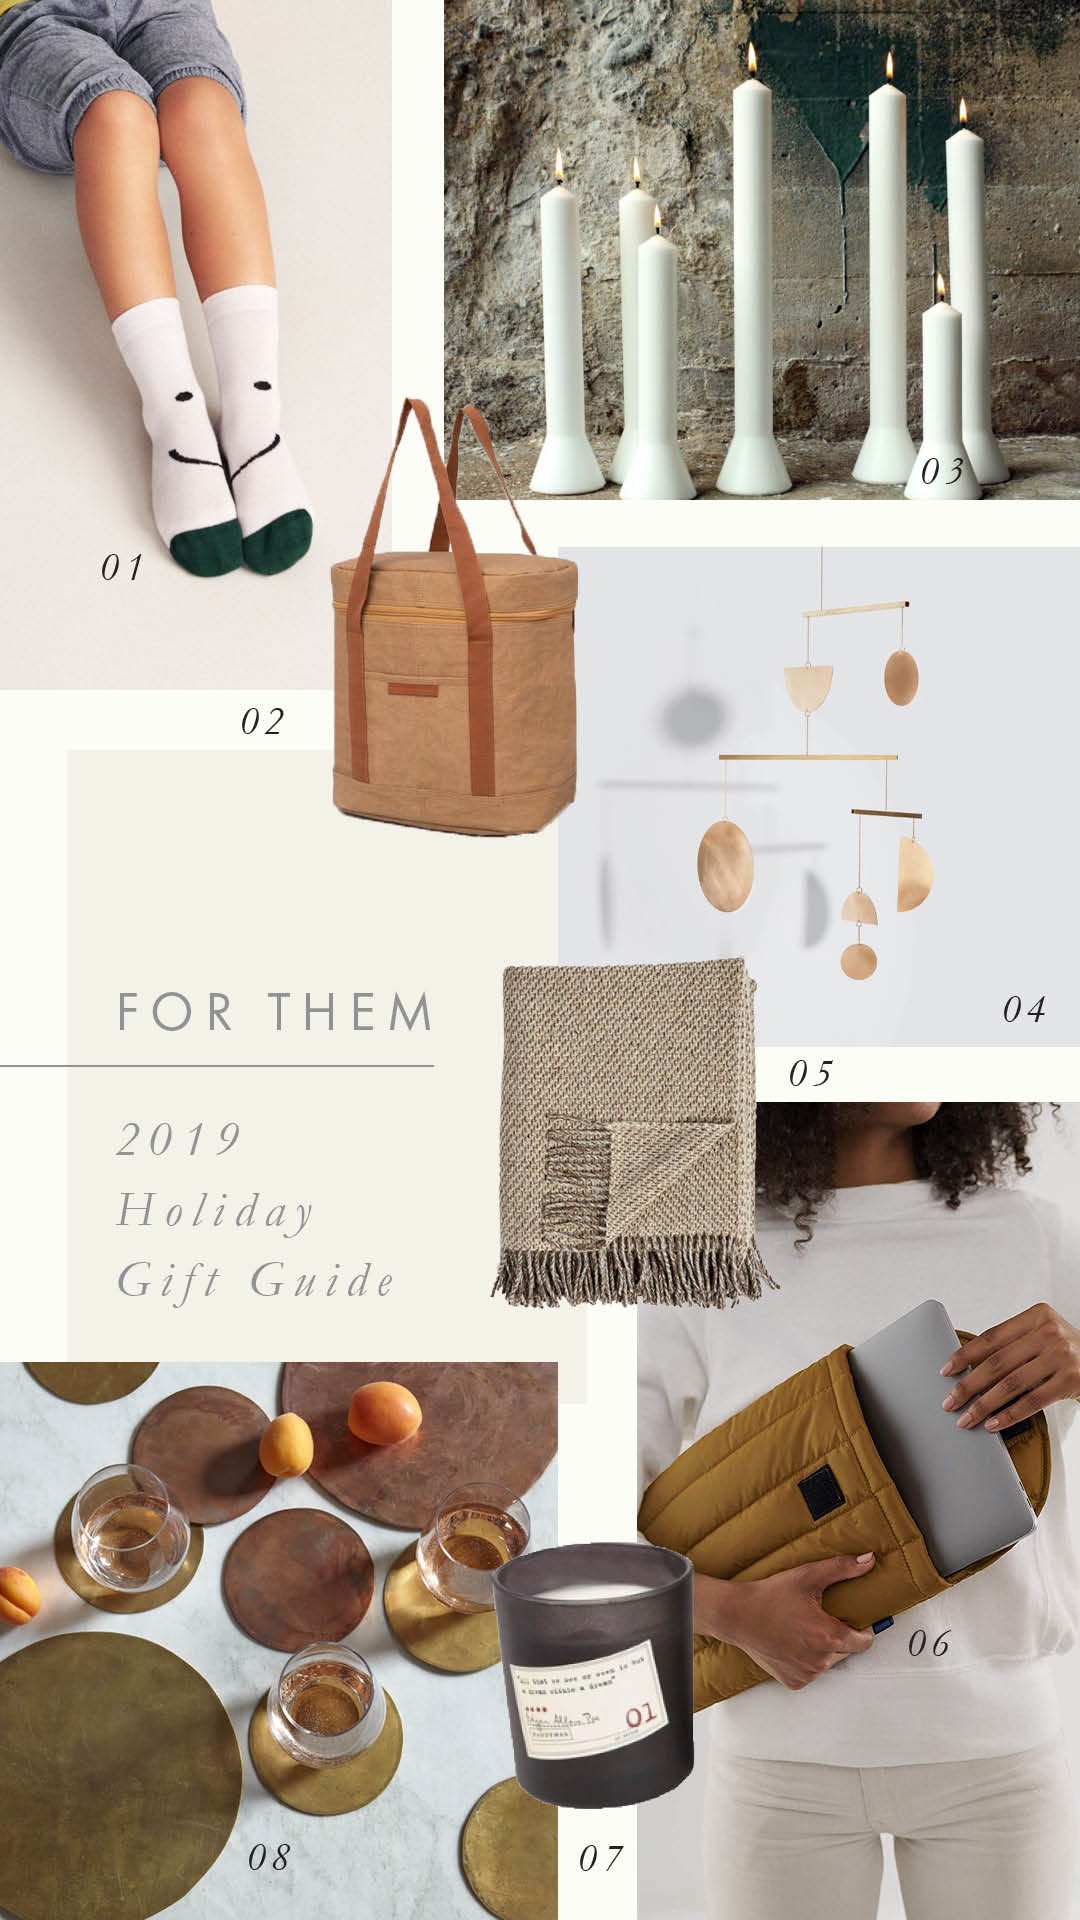 Holiday Gift Guide - For Them